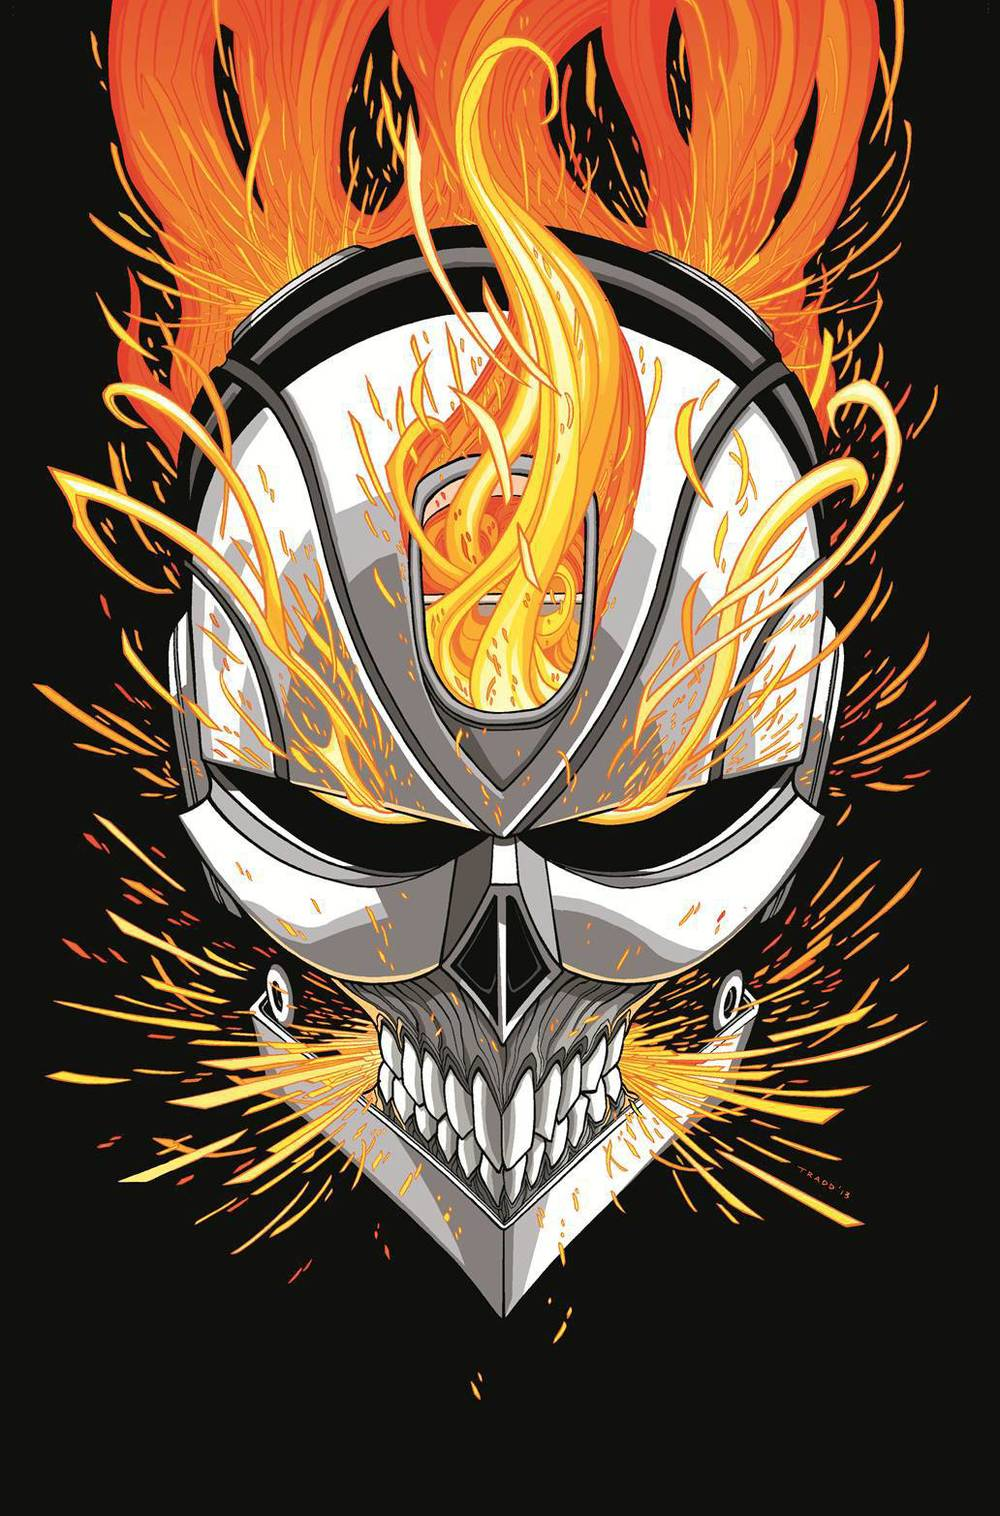 All New Ghost Rider #1 Variant Cover by Tradd Moore